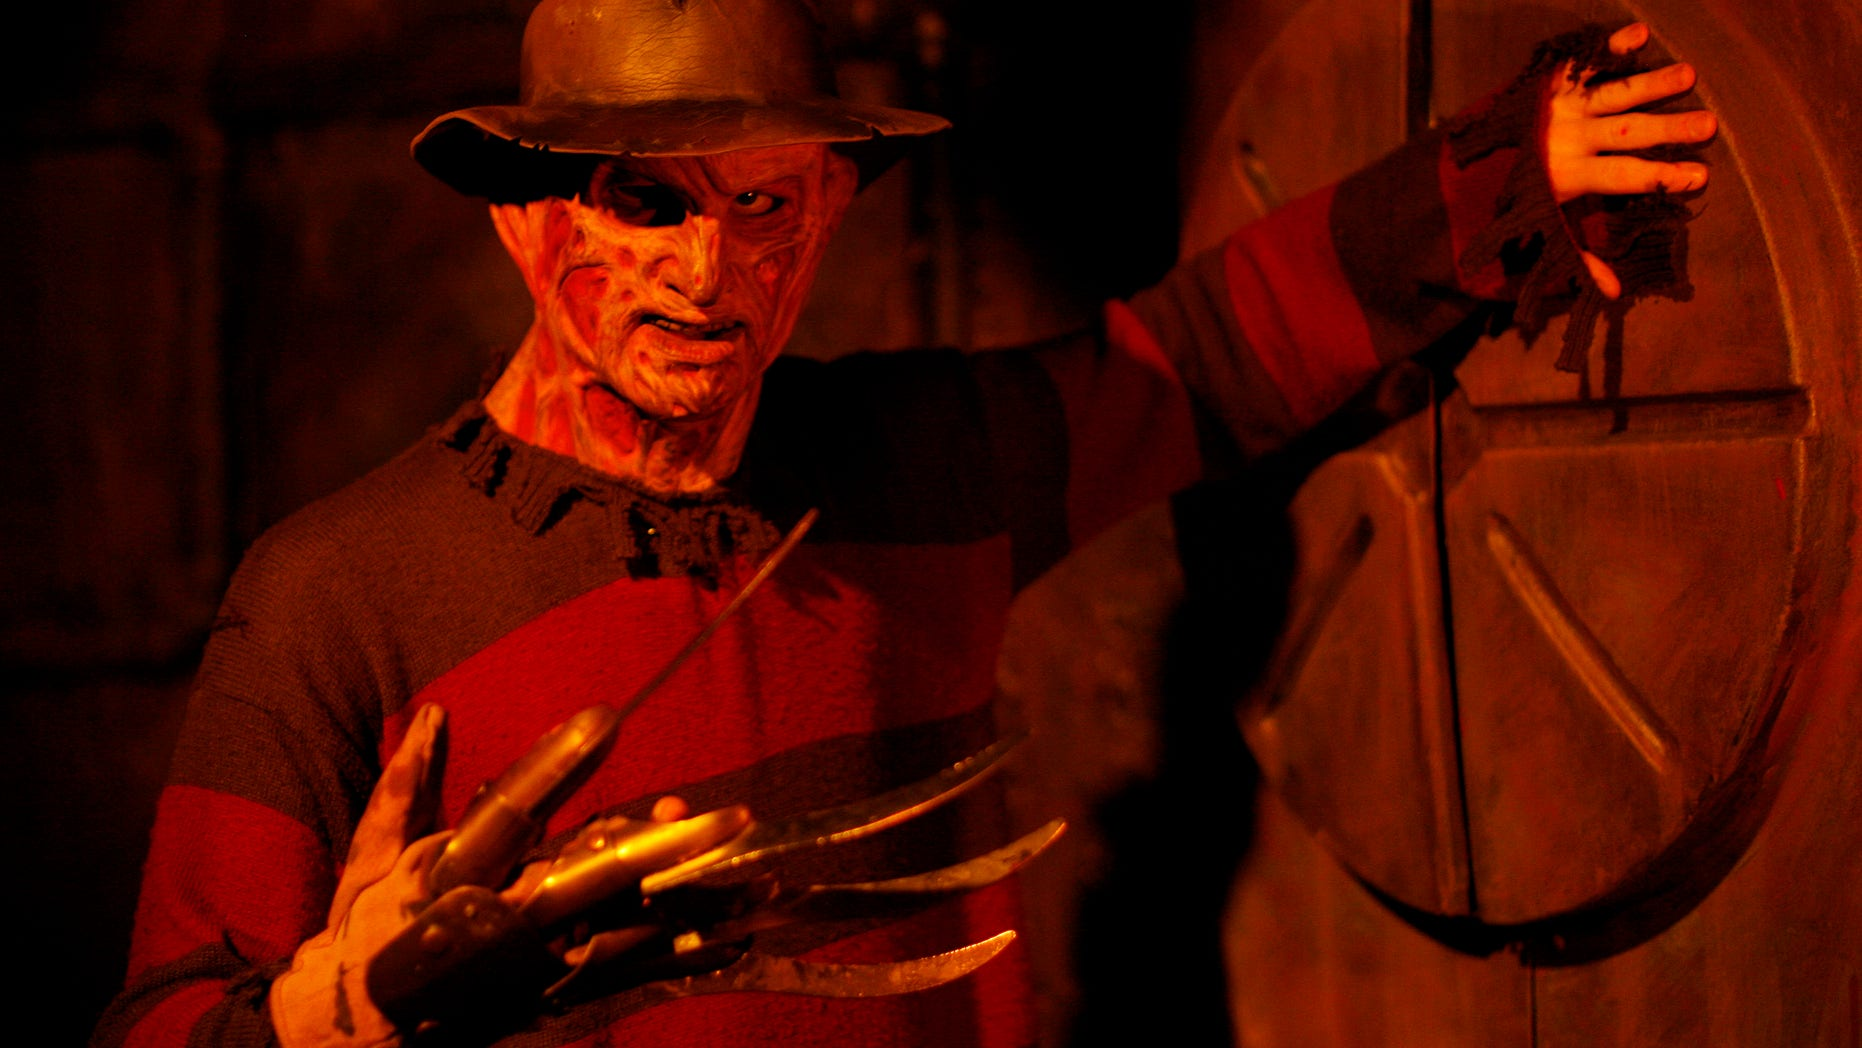 man dressed as freddy krueger opens fire at texas halloween party